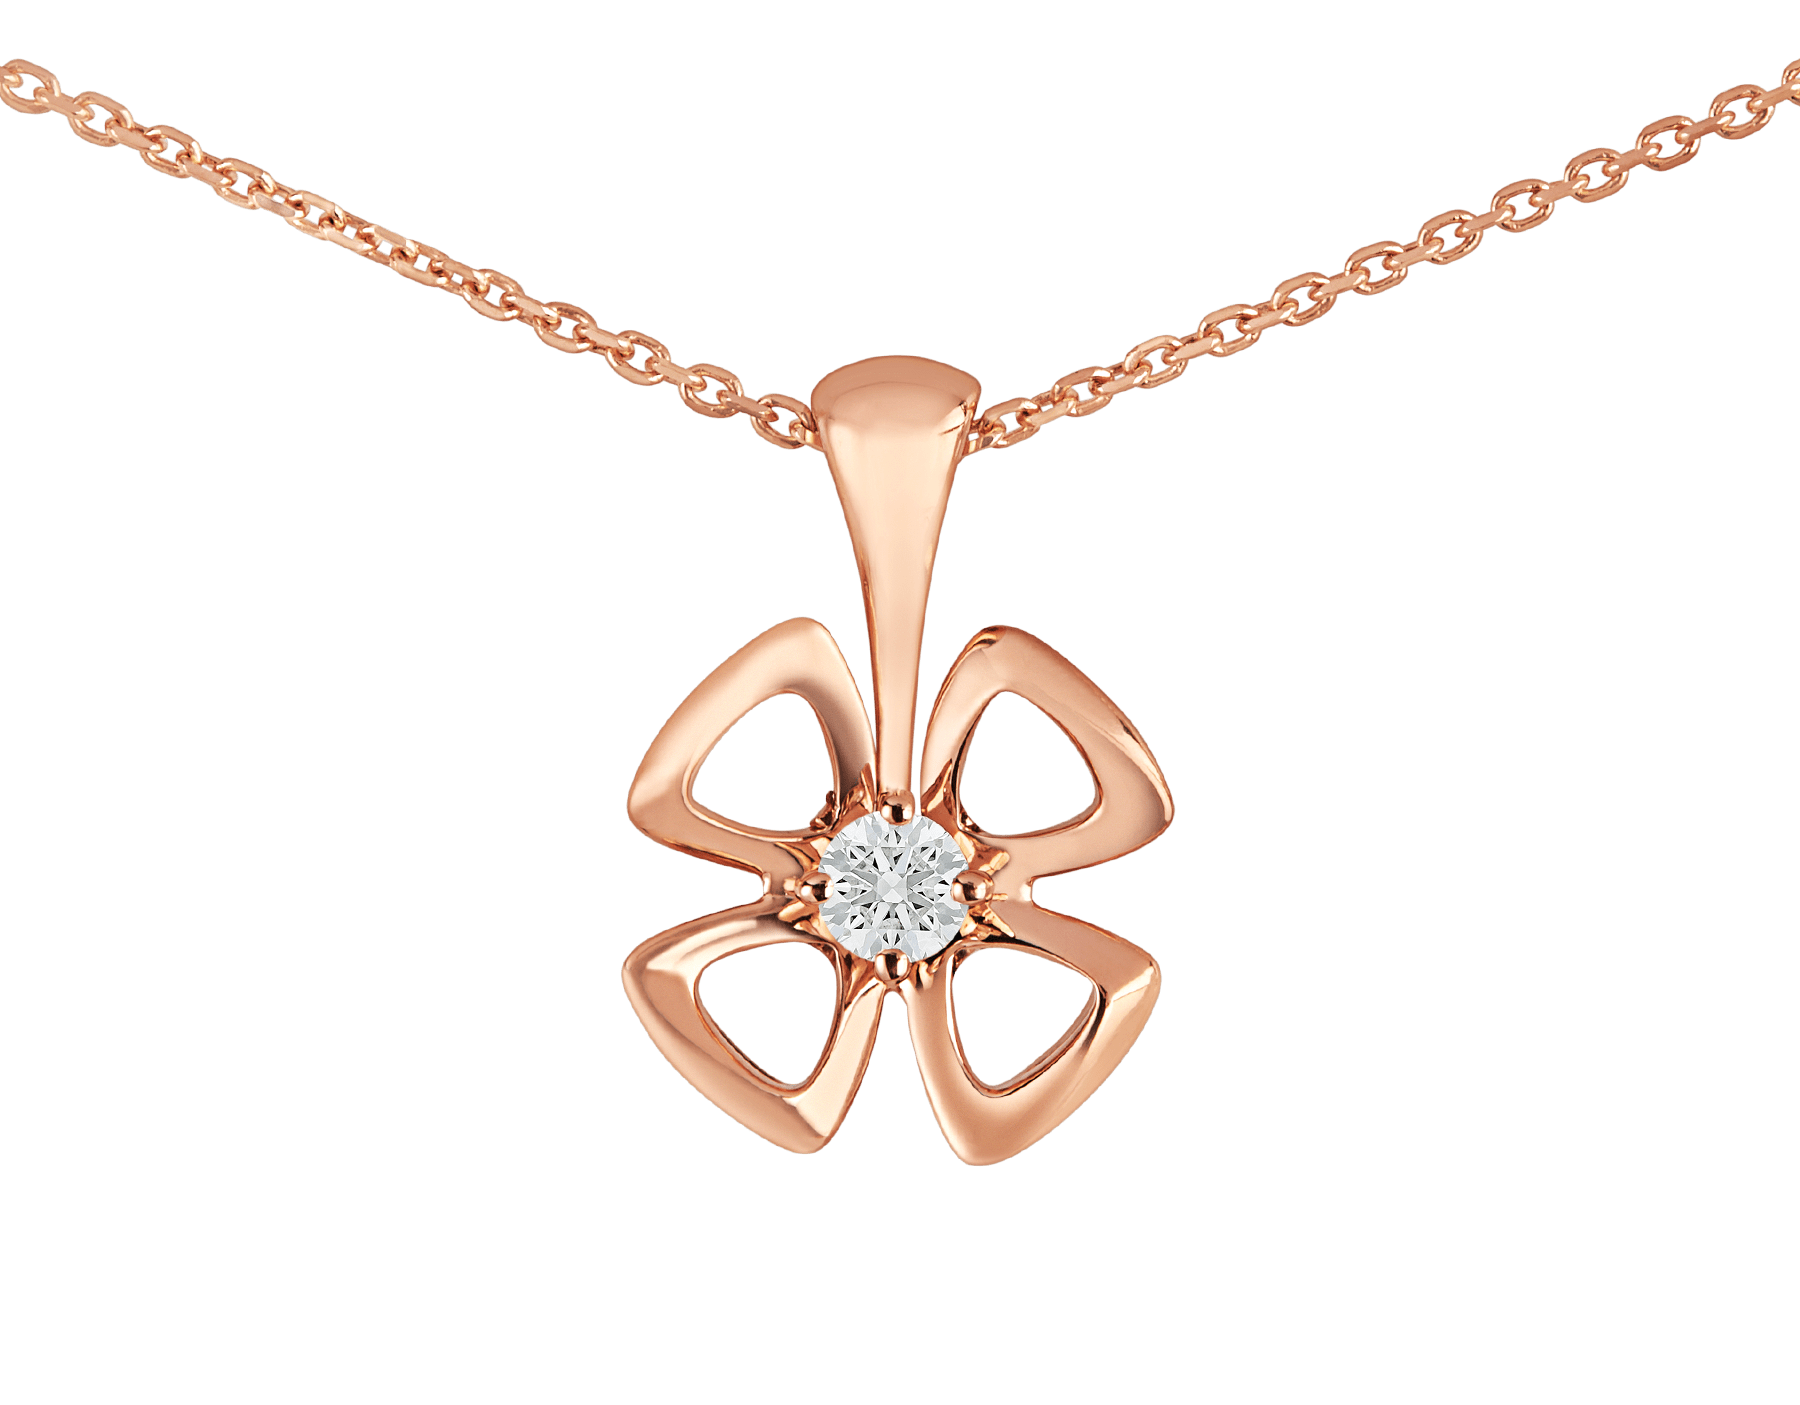 Fiorever 18 kt rose gold necklace set with a central diamond. 355324 image 3